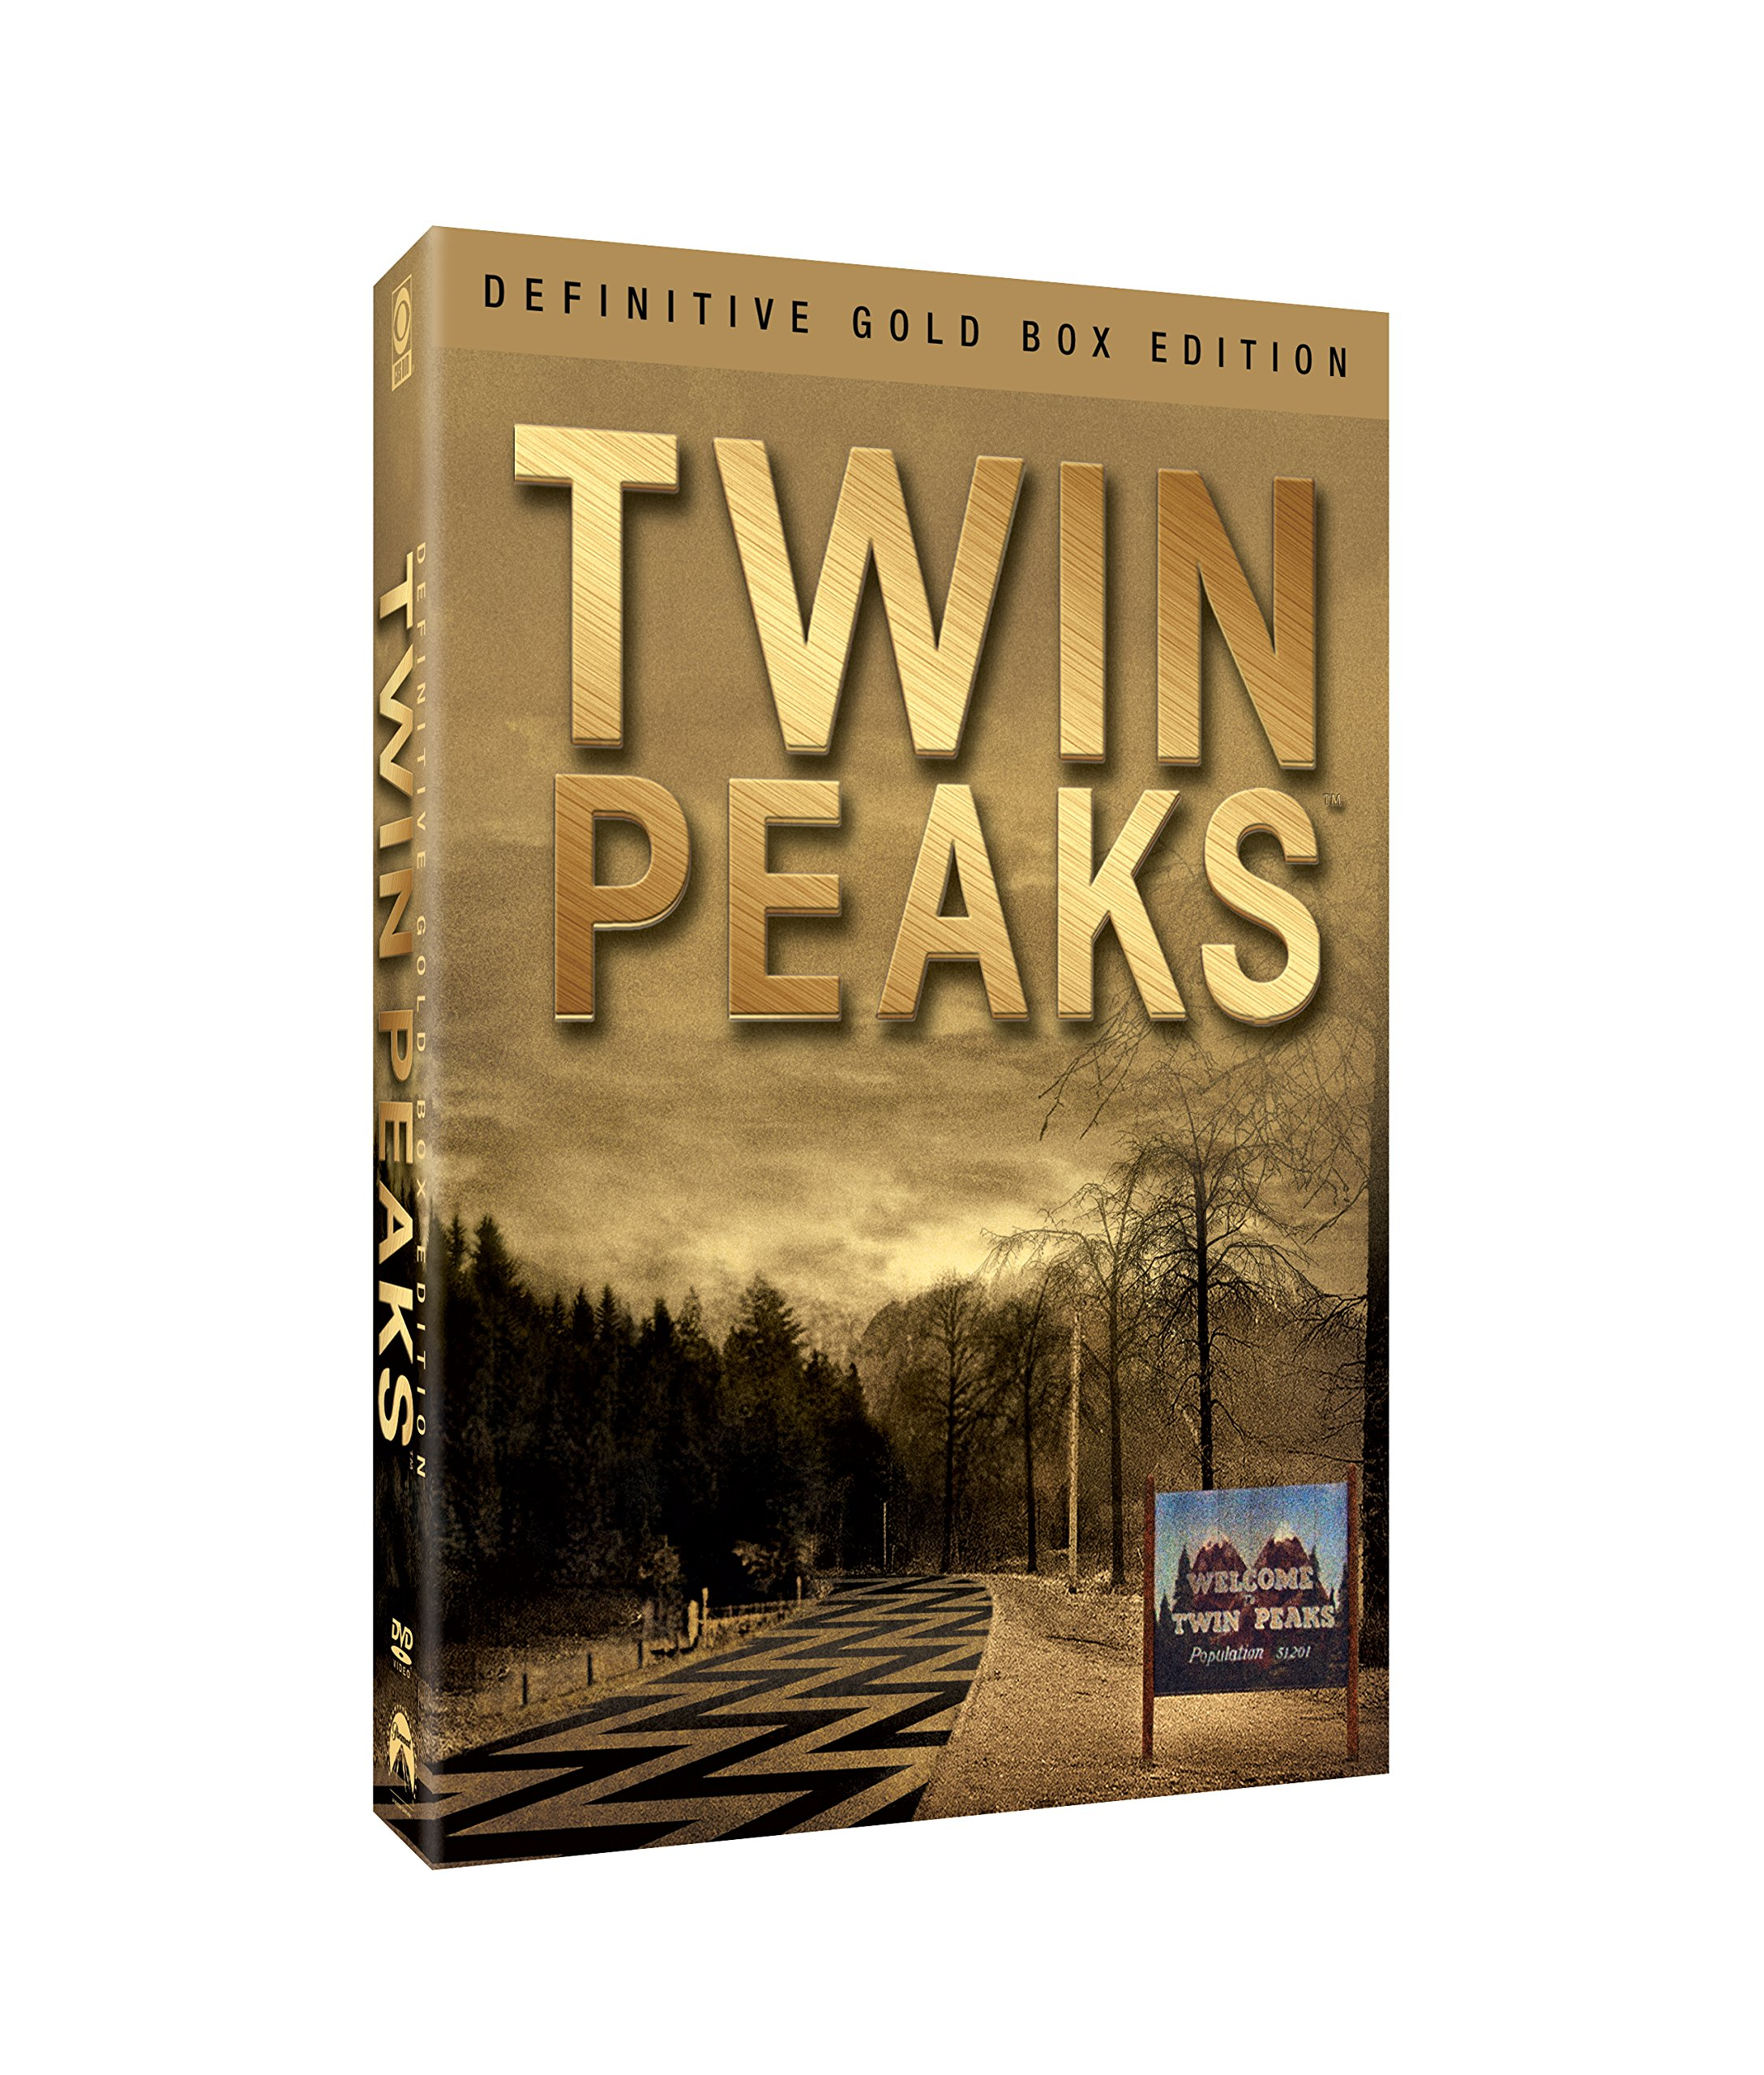 DVD : Twin Peaks: Definitive Gold Box Edition (Gold, Boxed Set, Full Frame, Slipsleeve Packaging, Repackaged)